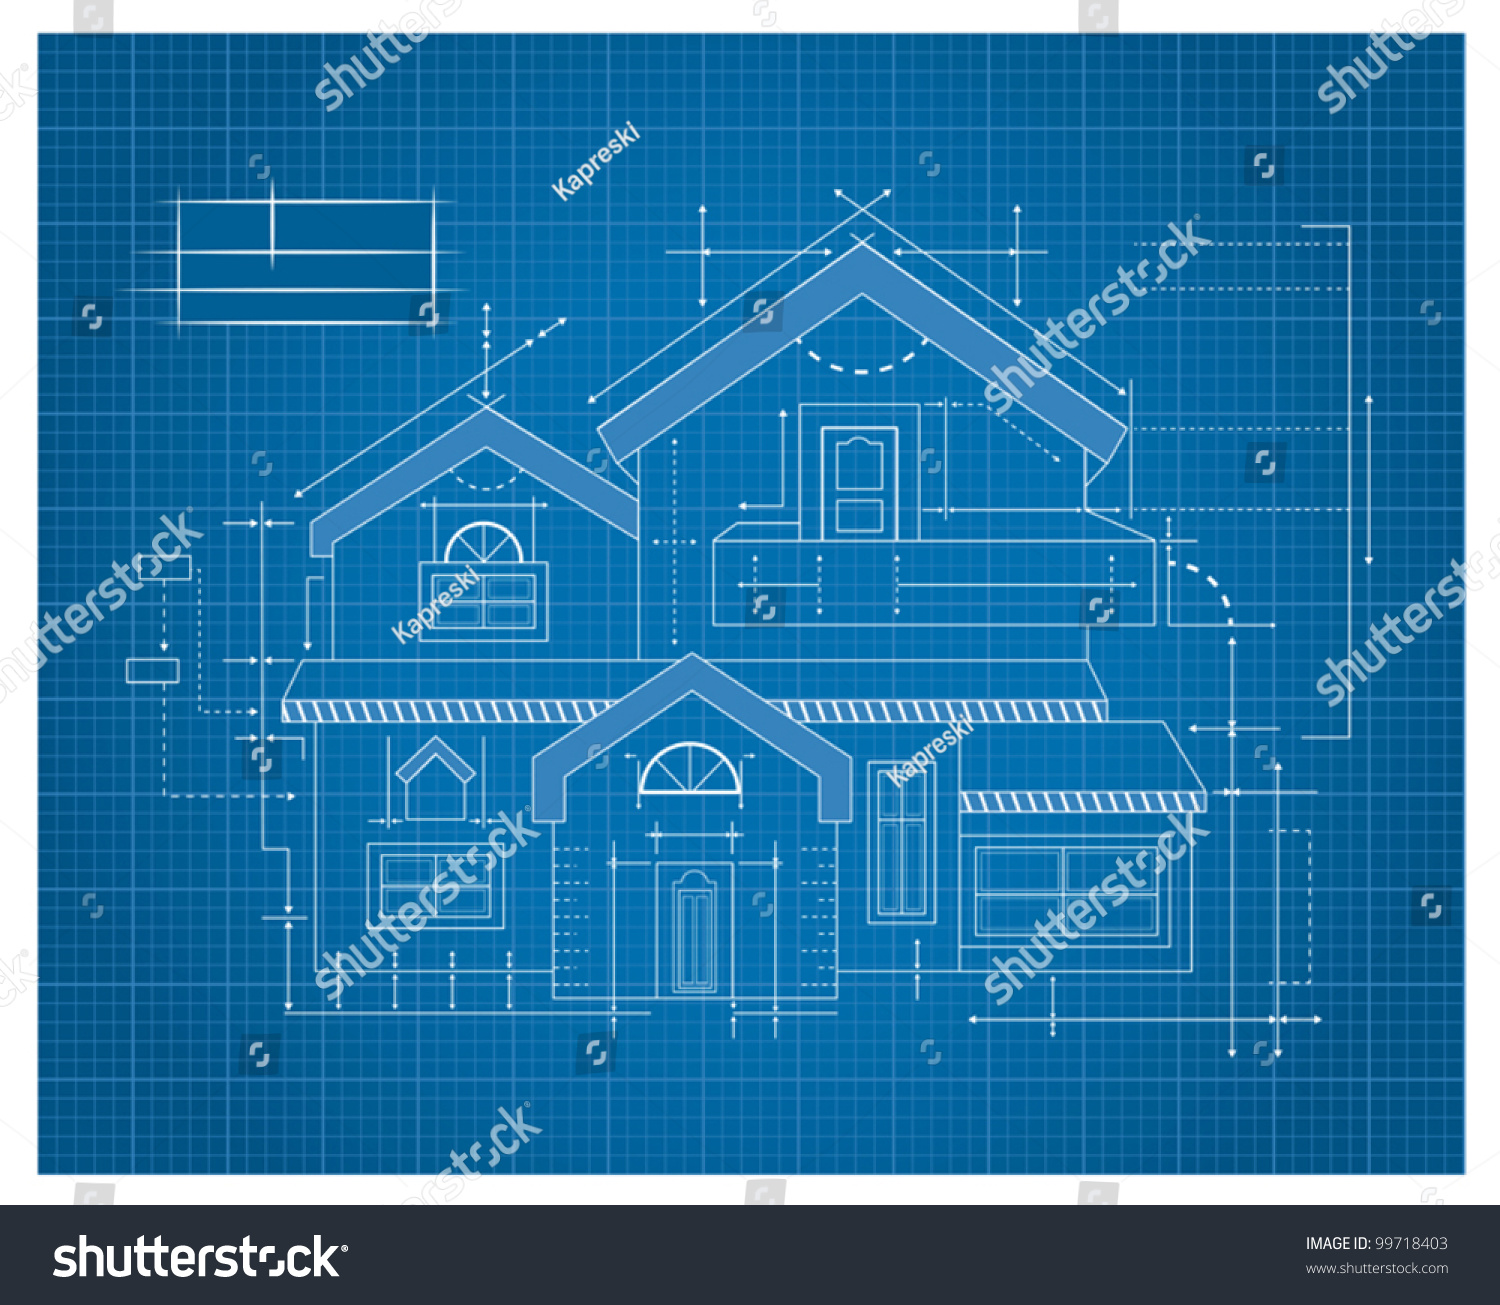 Modern house blueprint stock vector 99718403 shutterstock for Blue print homes